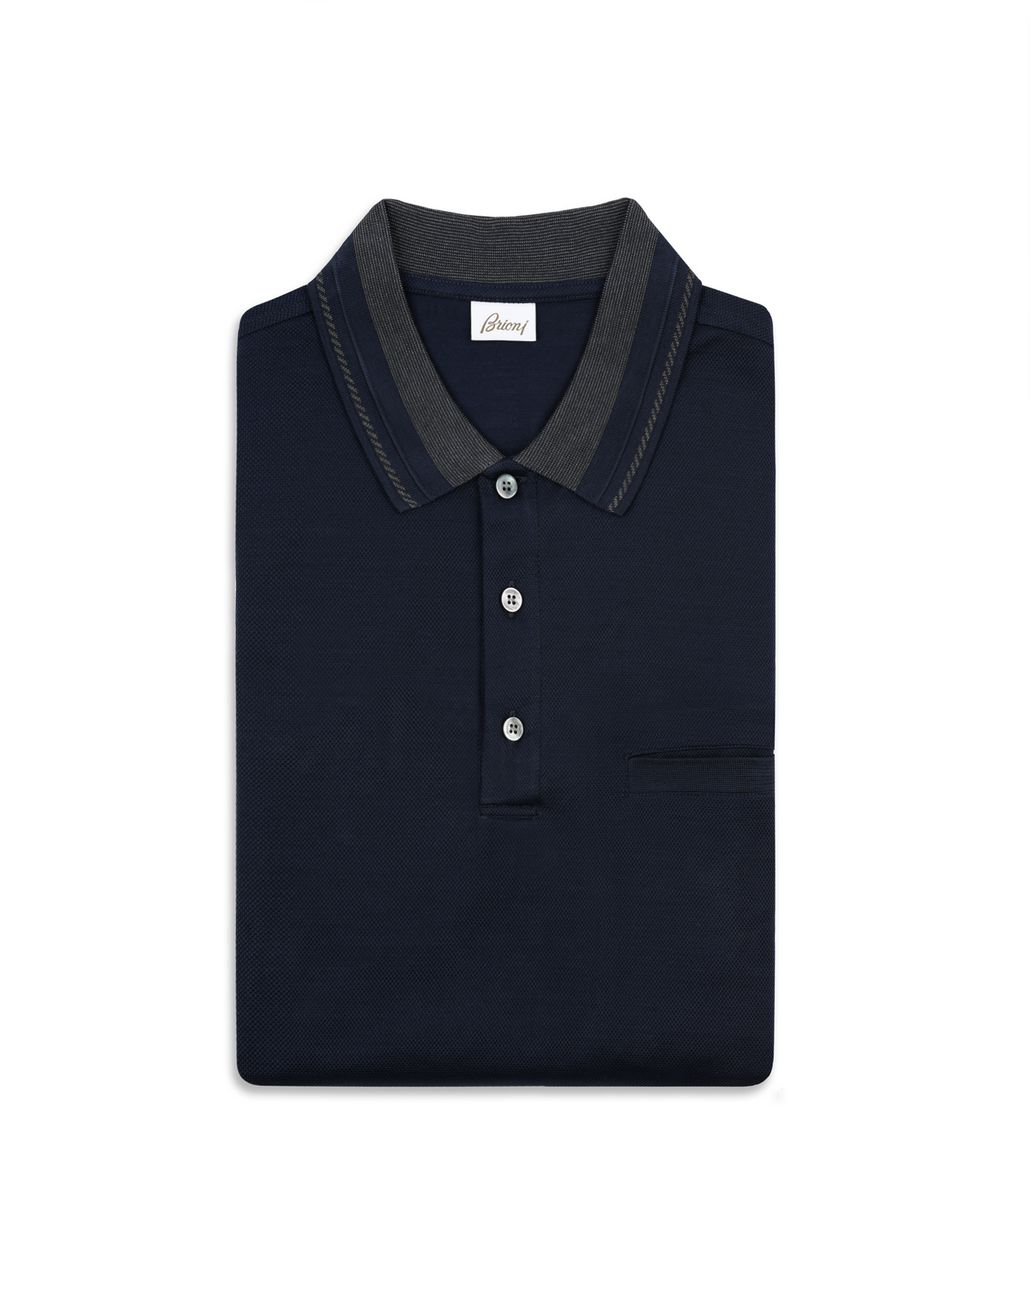 BRIONI Navy Blue Polo Shirt with Pocket T-Shirts & Polos Man e